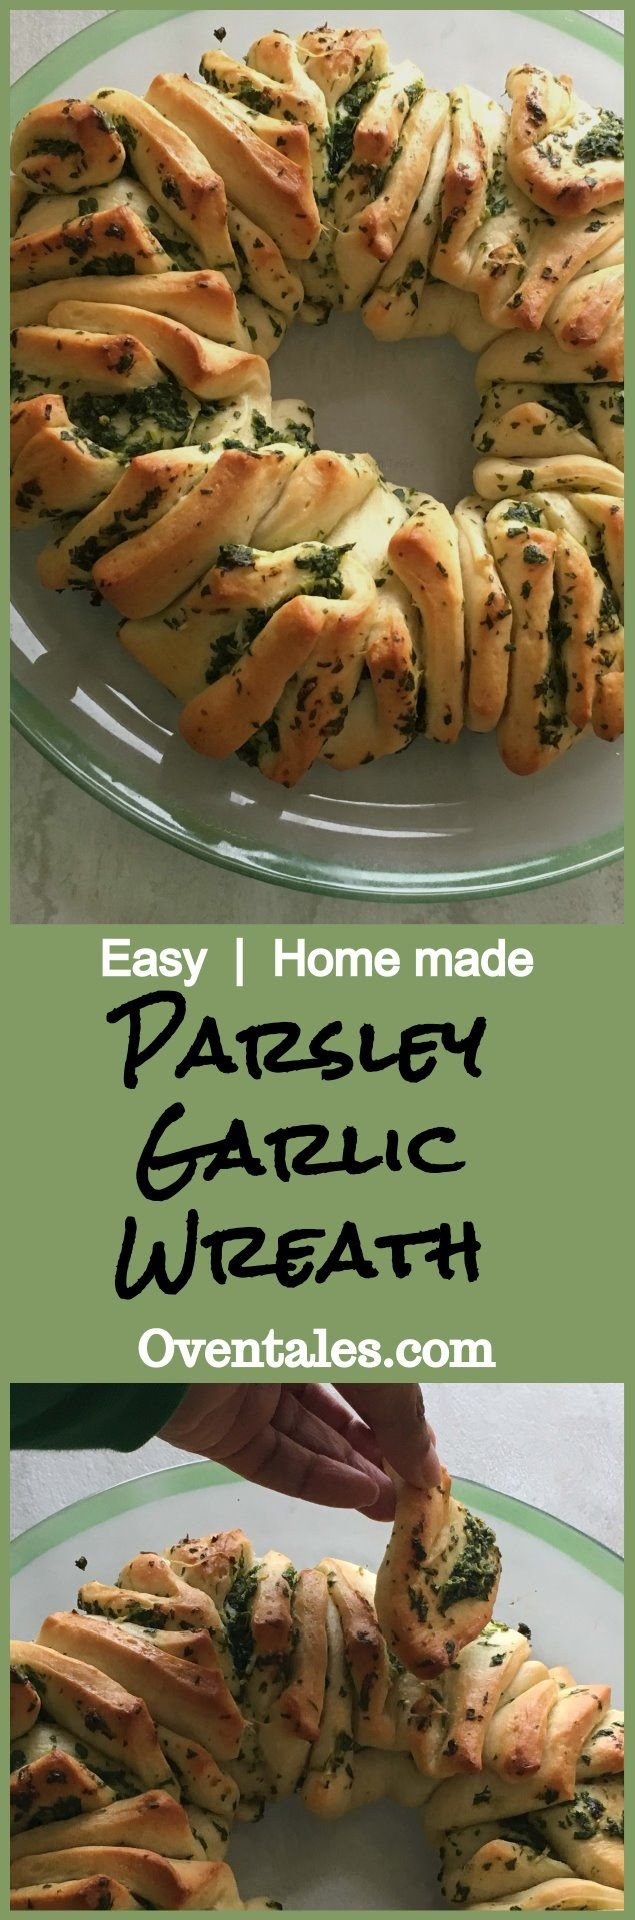 https://oventales.com/wp-content/uploads/2017/07/Parsley-Garlic-Wreath-Bread.jpg